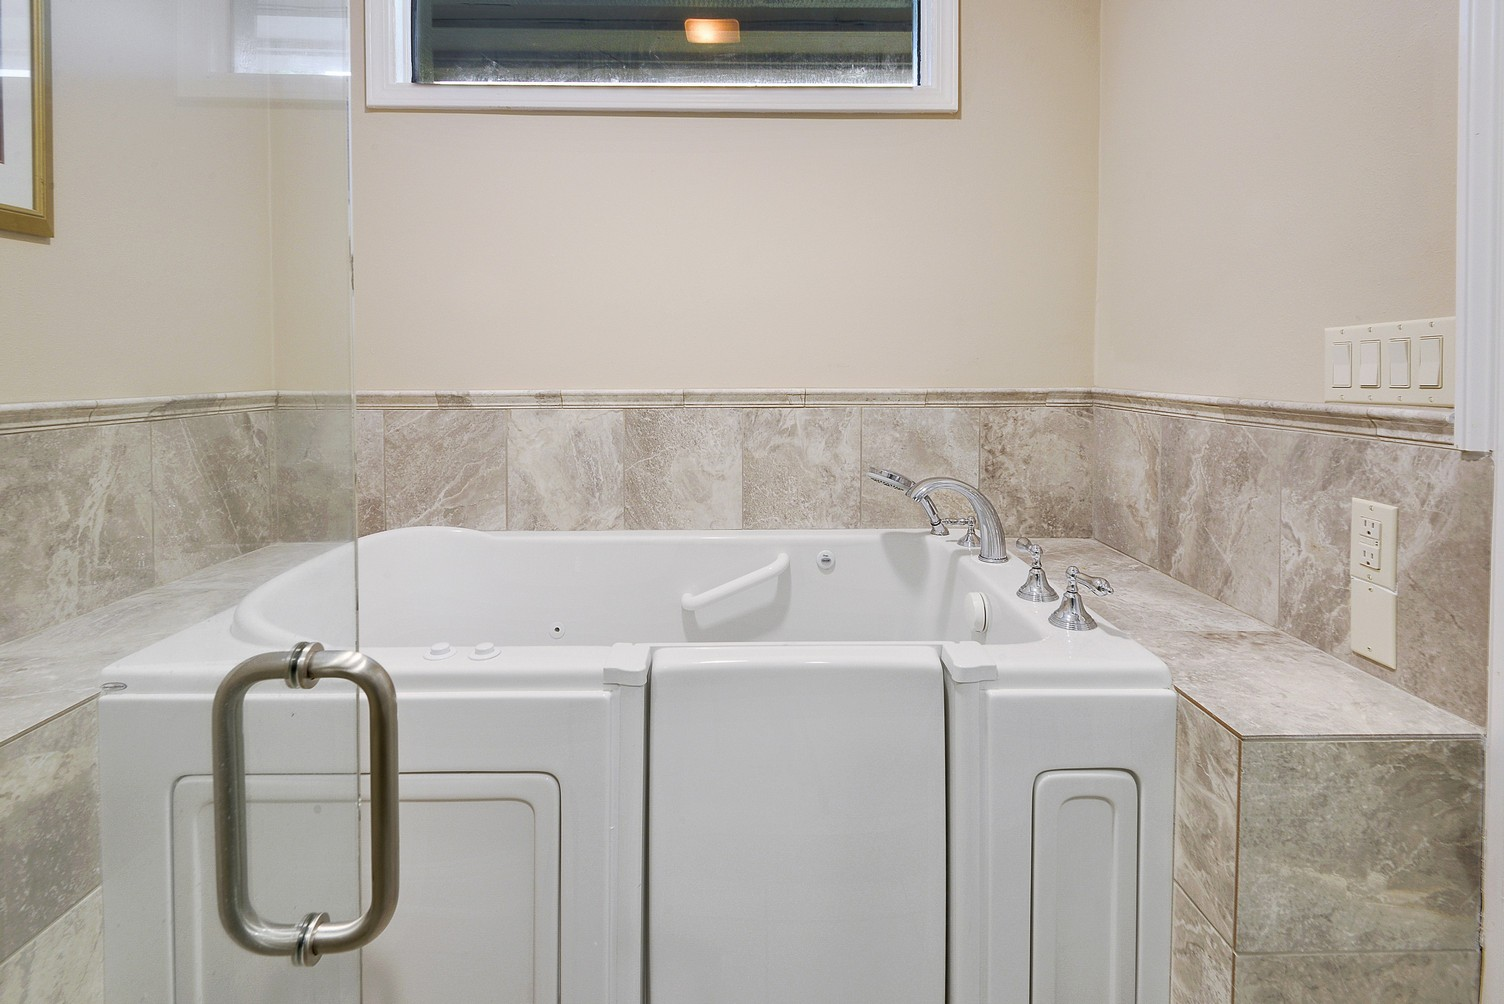 Walk In Tub Bathroom Remodeling In Baton Rouge Zitro Construction